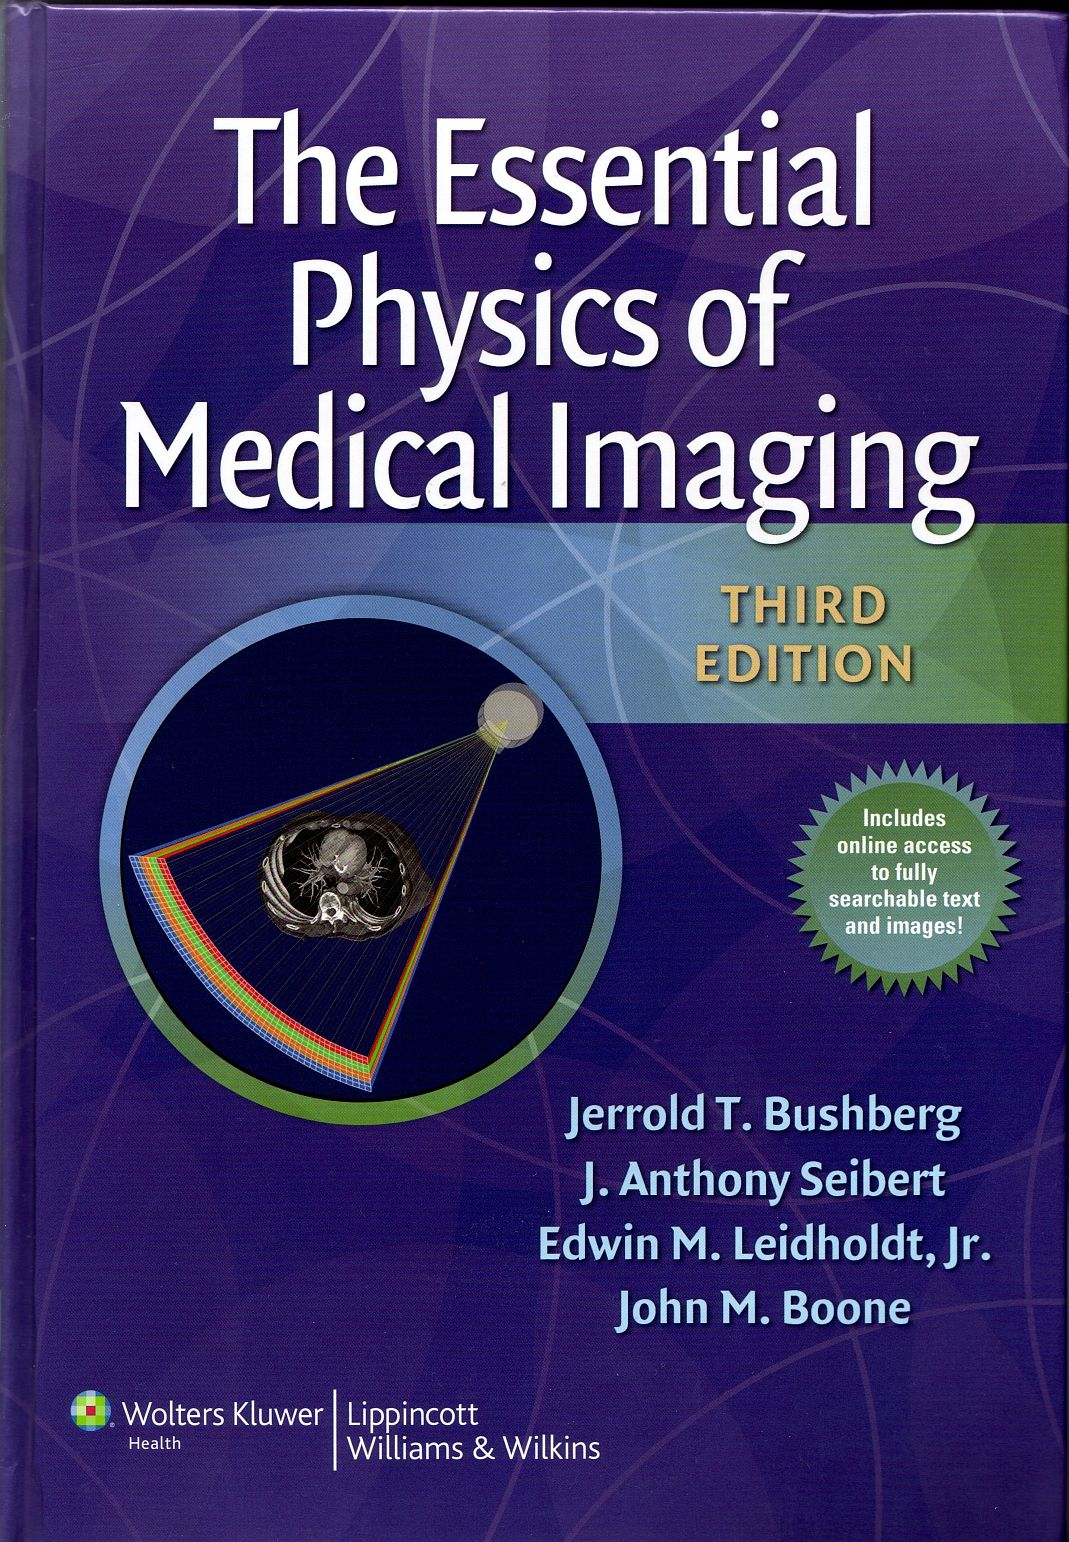 The Essential Physics Of Medical Imaging Available At Princeton